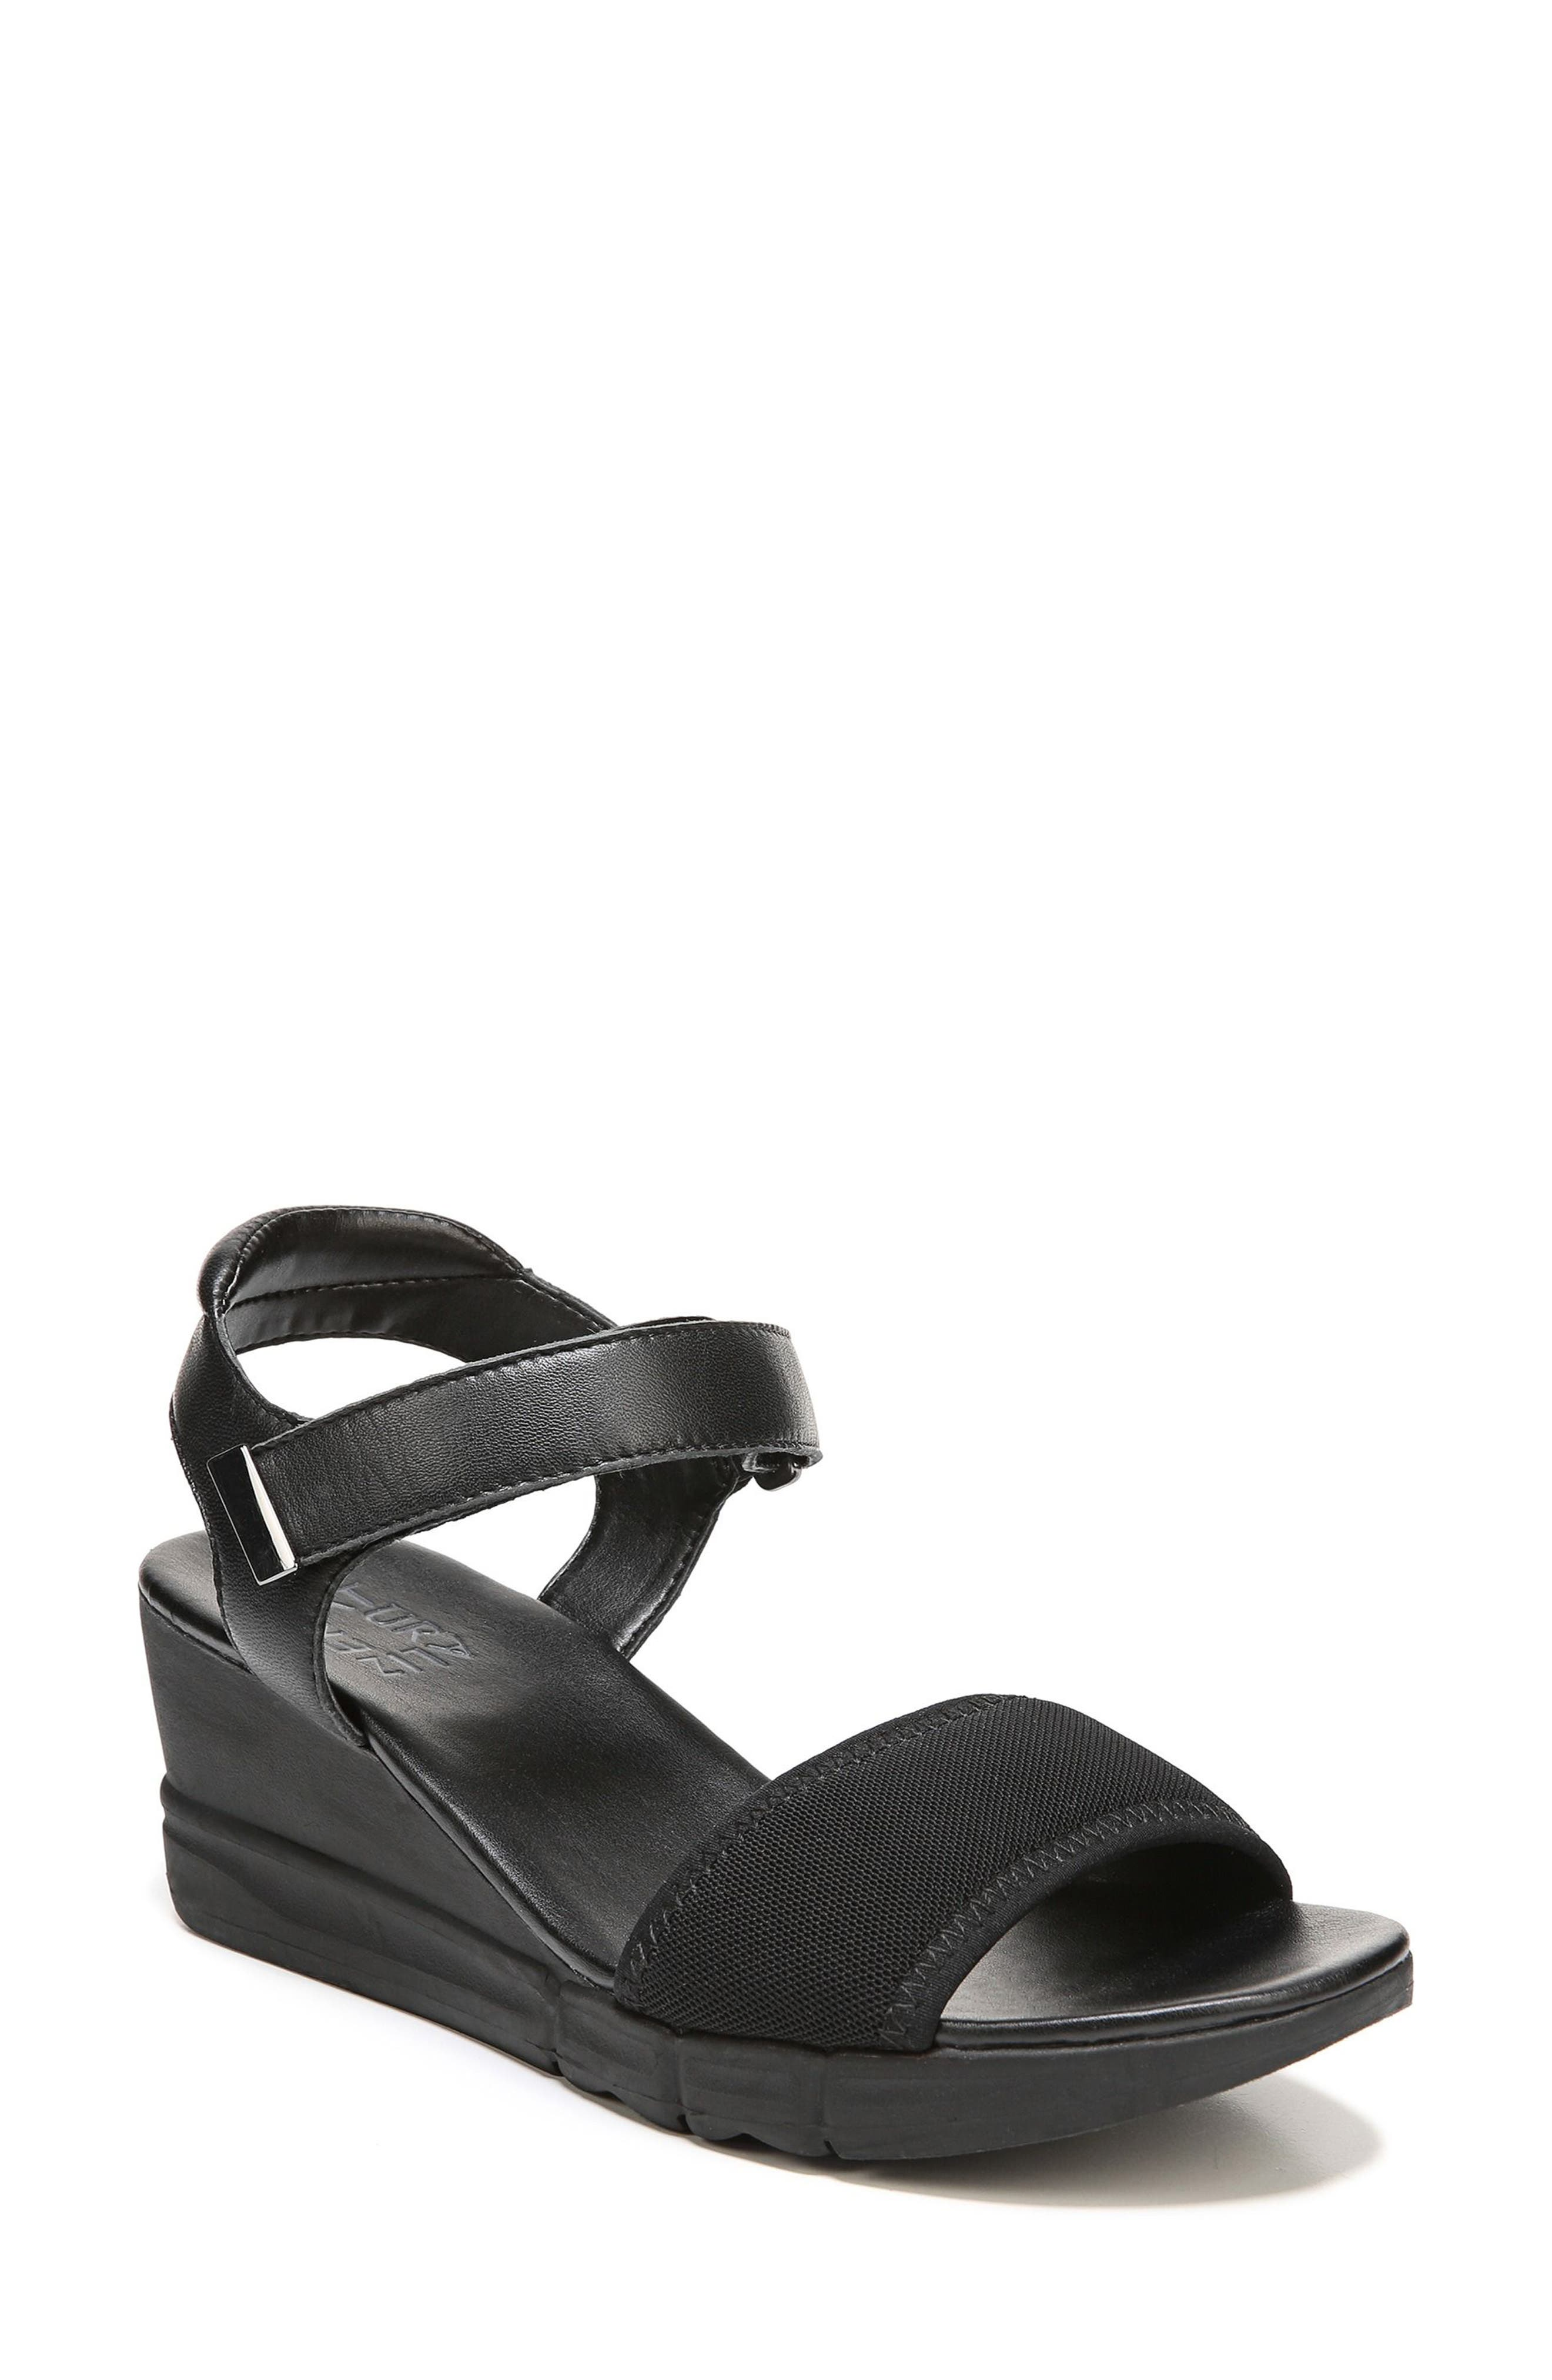 Irena Wedge Sandal,                         Main,                         color, Black Leather